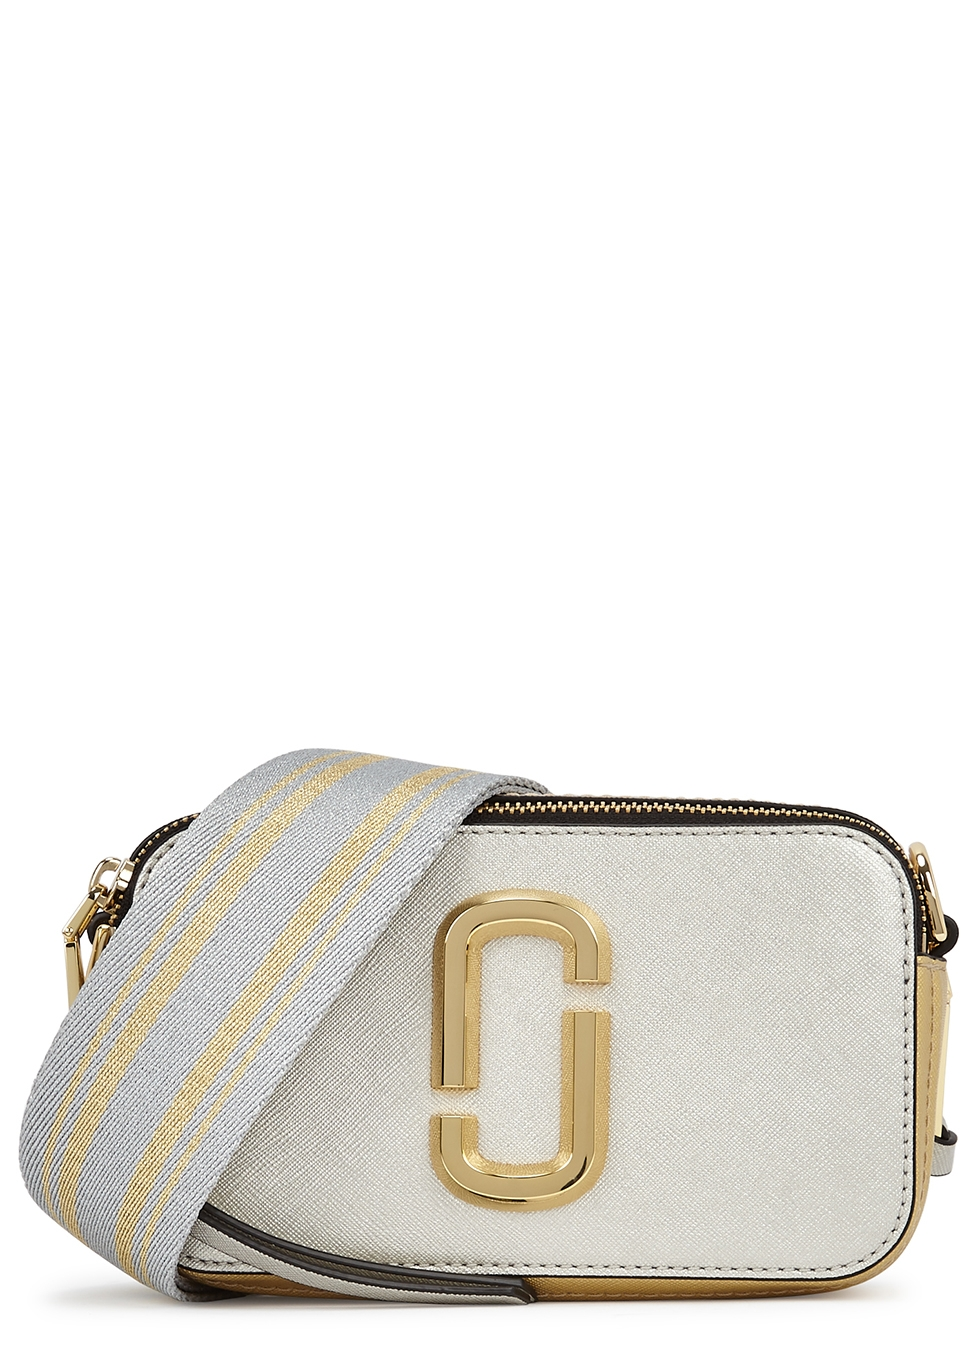 The Snapshot Small leather cross-body bag